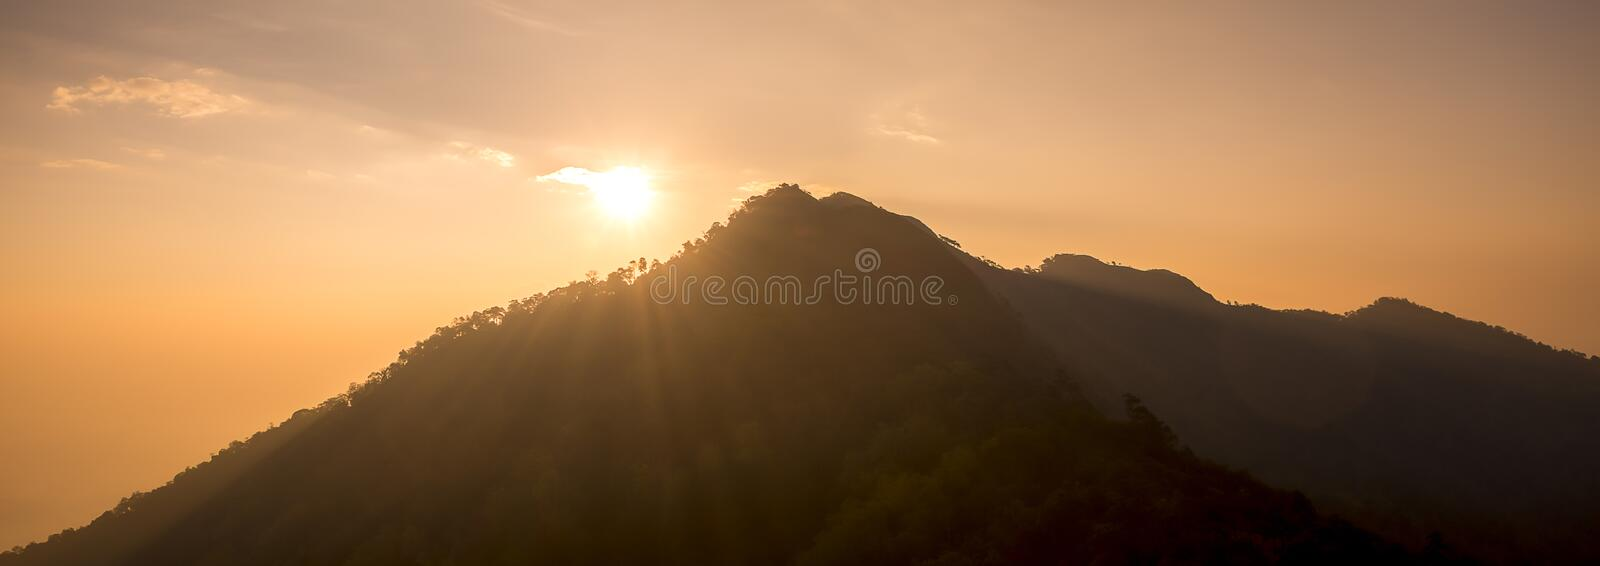 Sunset scene on hight mountain. Sunshine through the clouds. silhouette at the mountain. I. Sunset scene on hight mountain. Sunshine through the clouds royalty free stock images